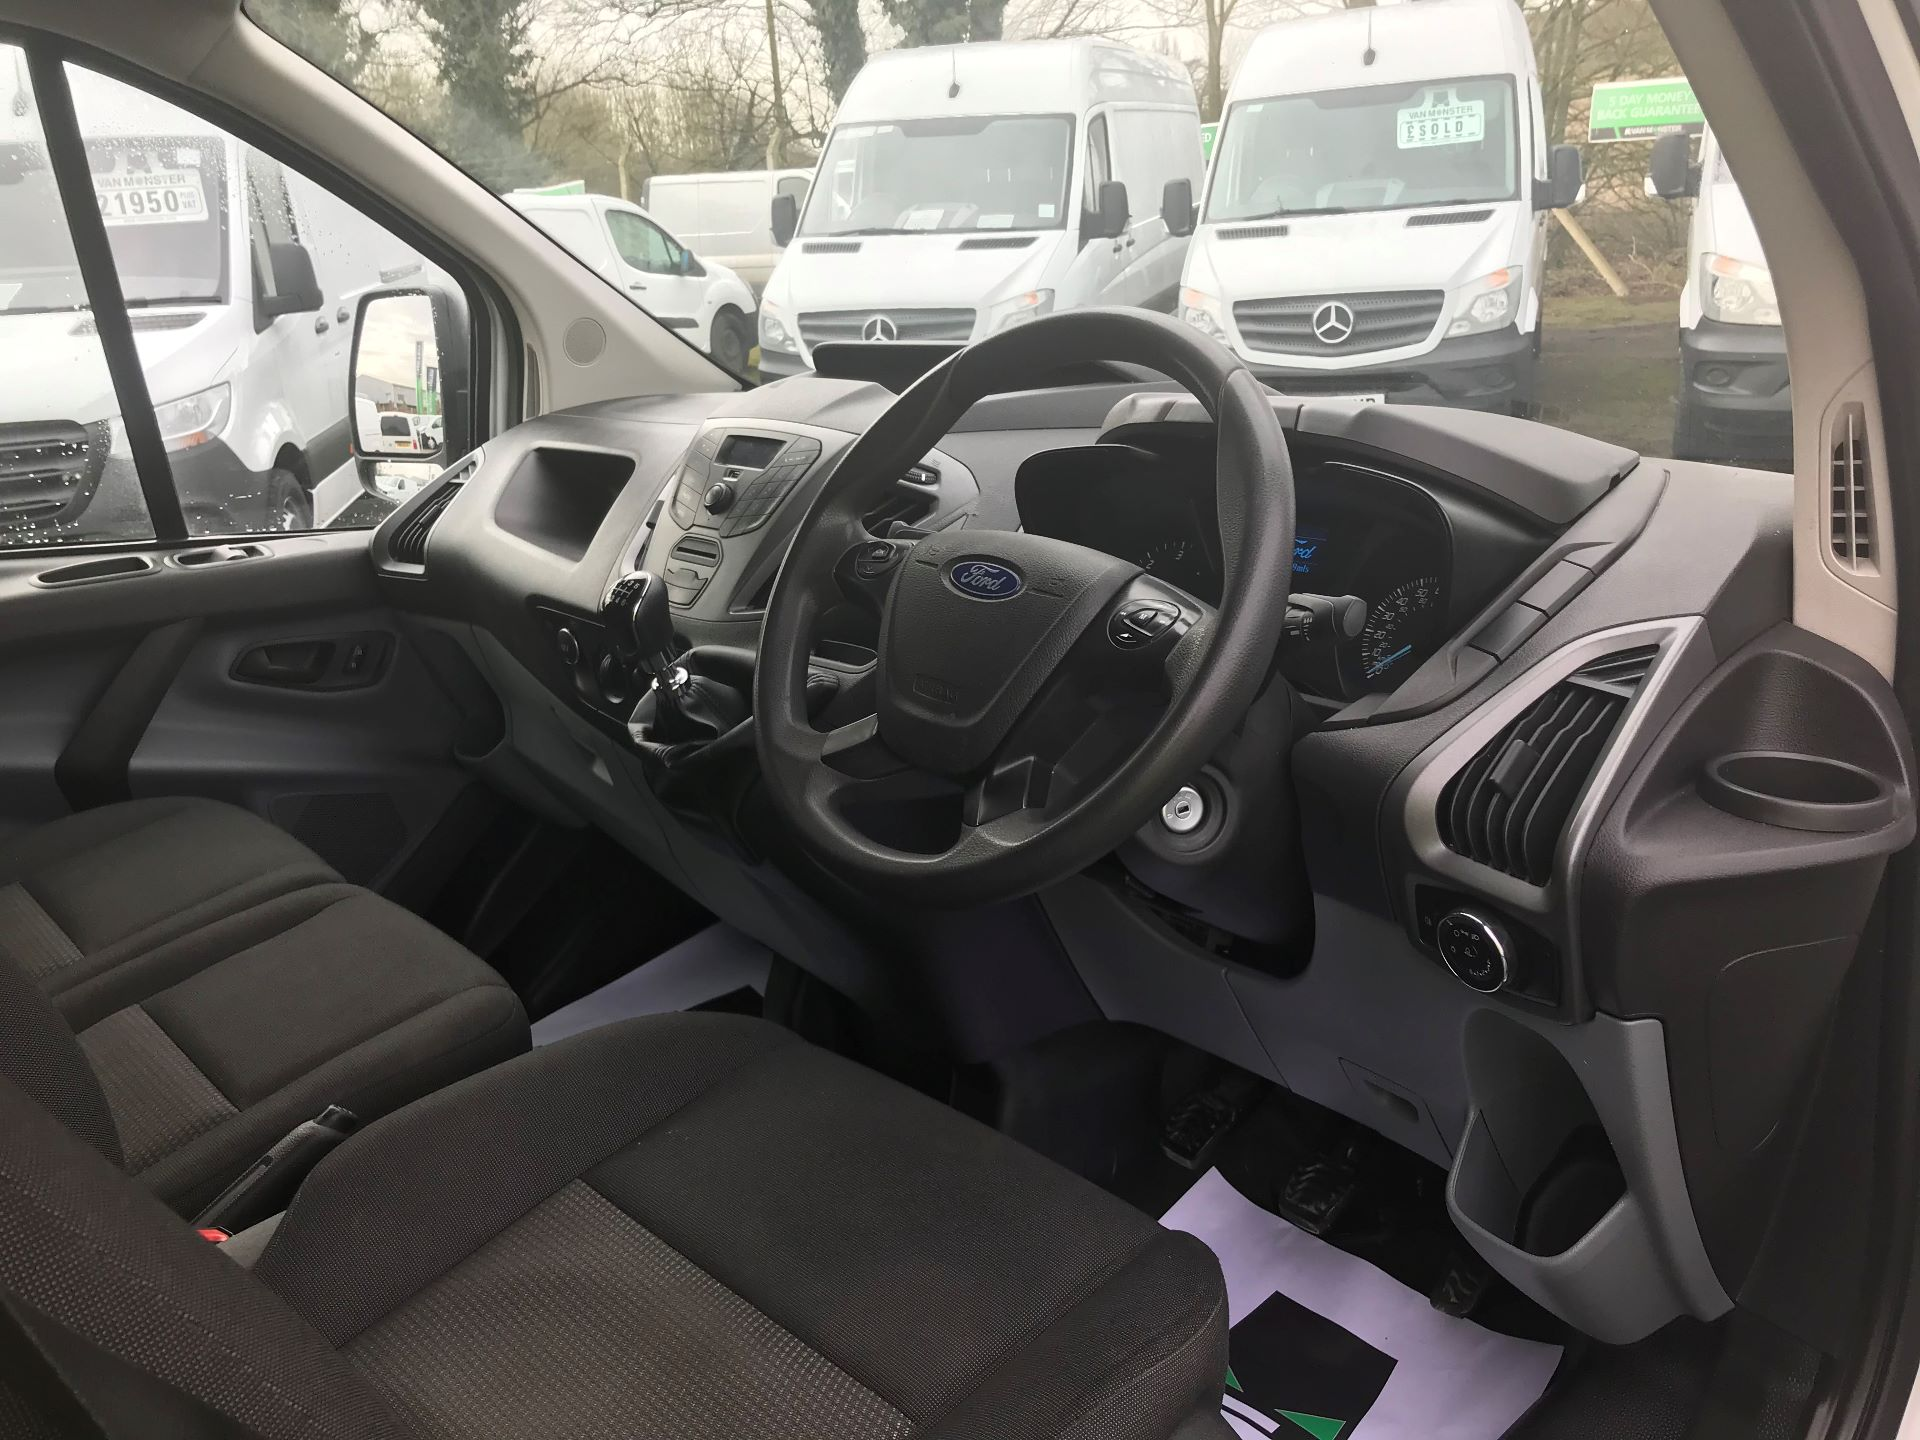 2016 Ford Transit Custom 2.0 TDCI 130PS HIGH ROOF VAN EURO 6 (WM66XJL) Image 17